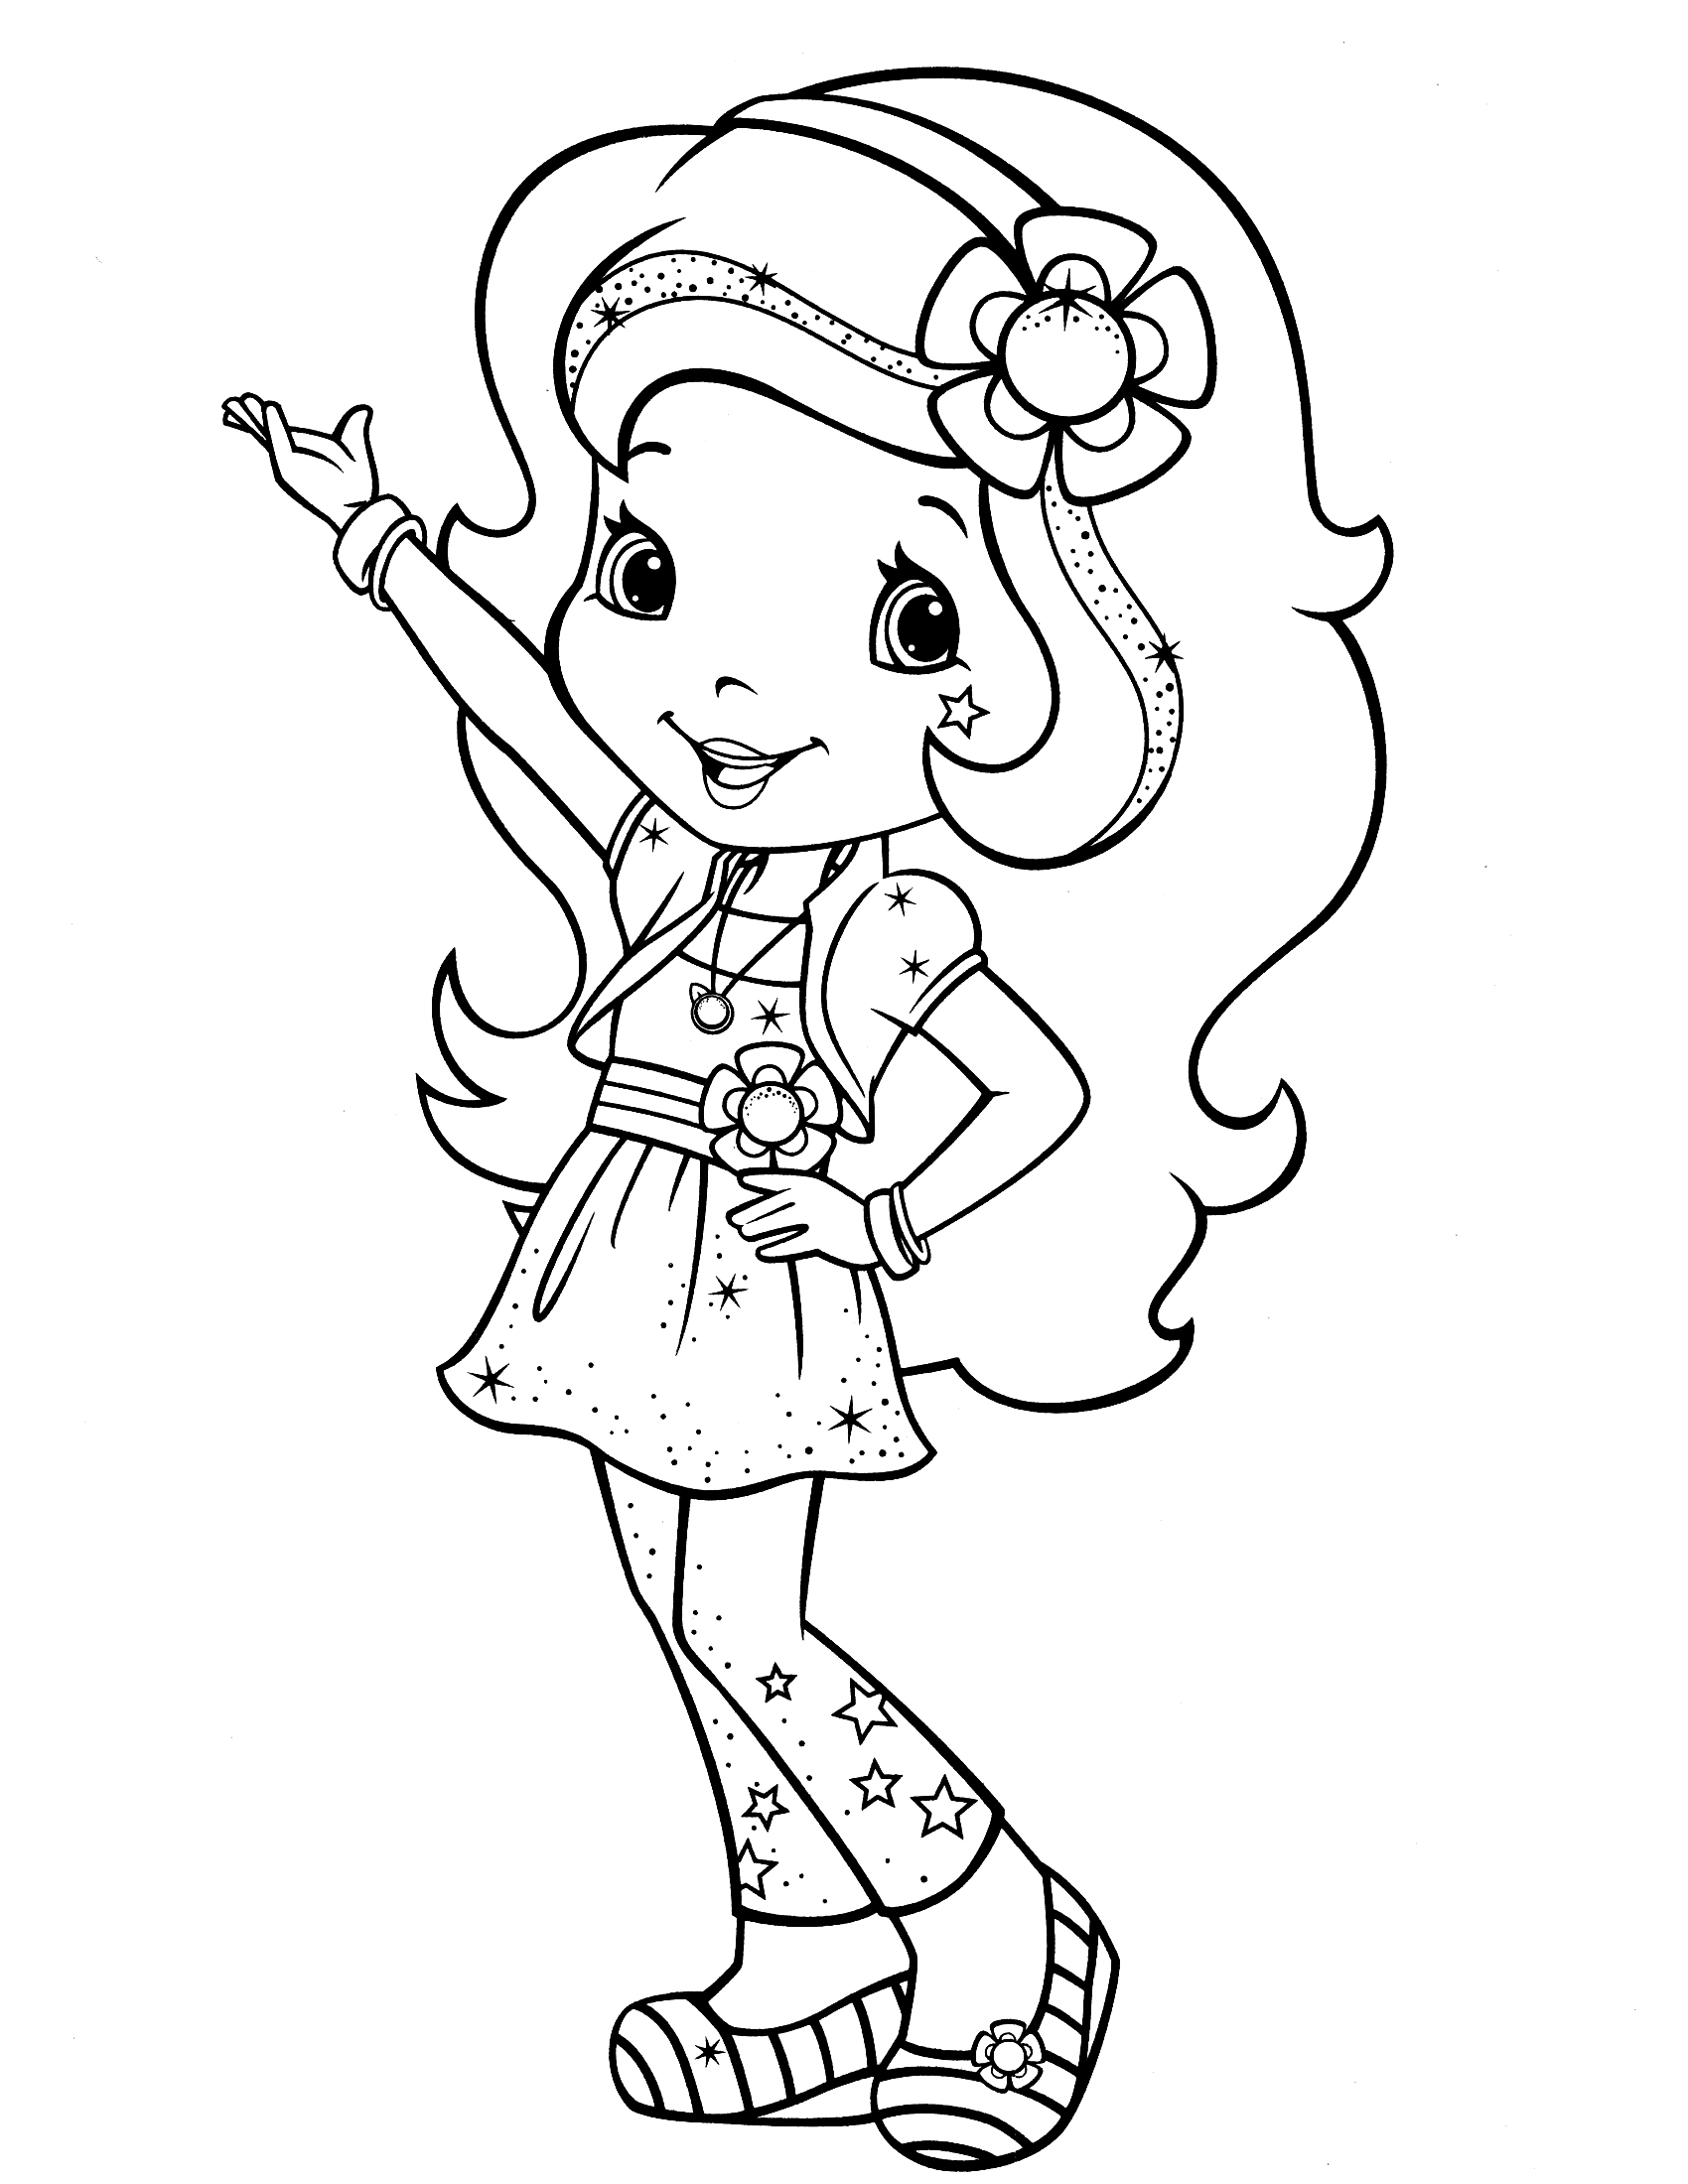 Free Strawberry Shortcake Coloring Pages At Getdrawings Com Free